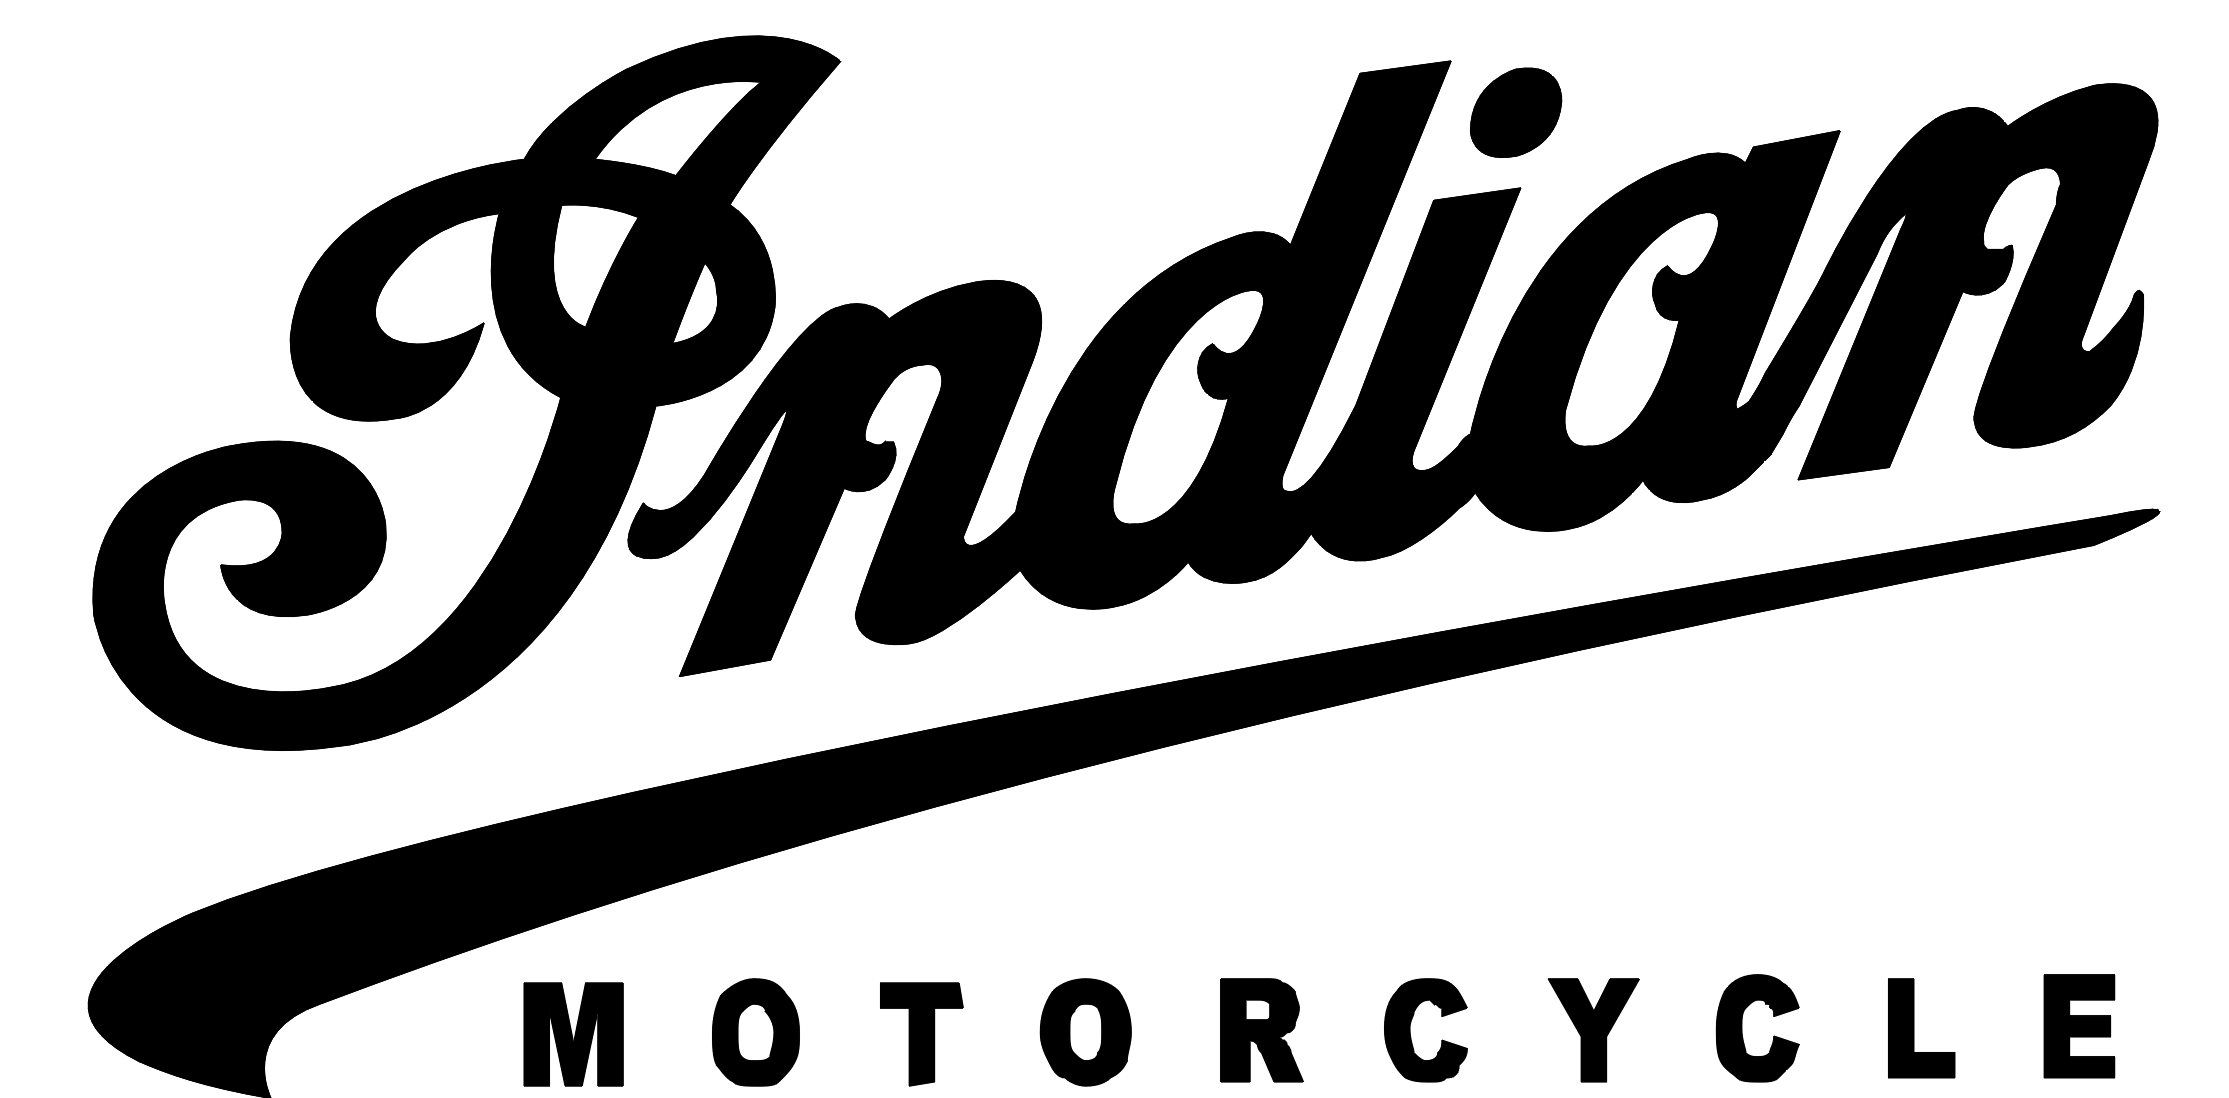 The Script Lettering Used For Indian Motorcycles Evoked A